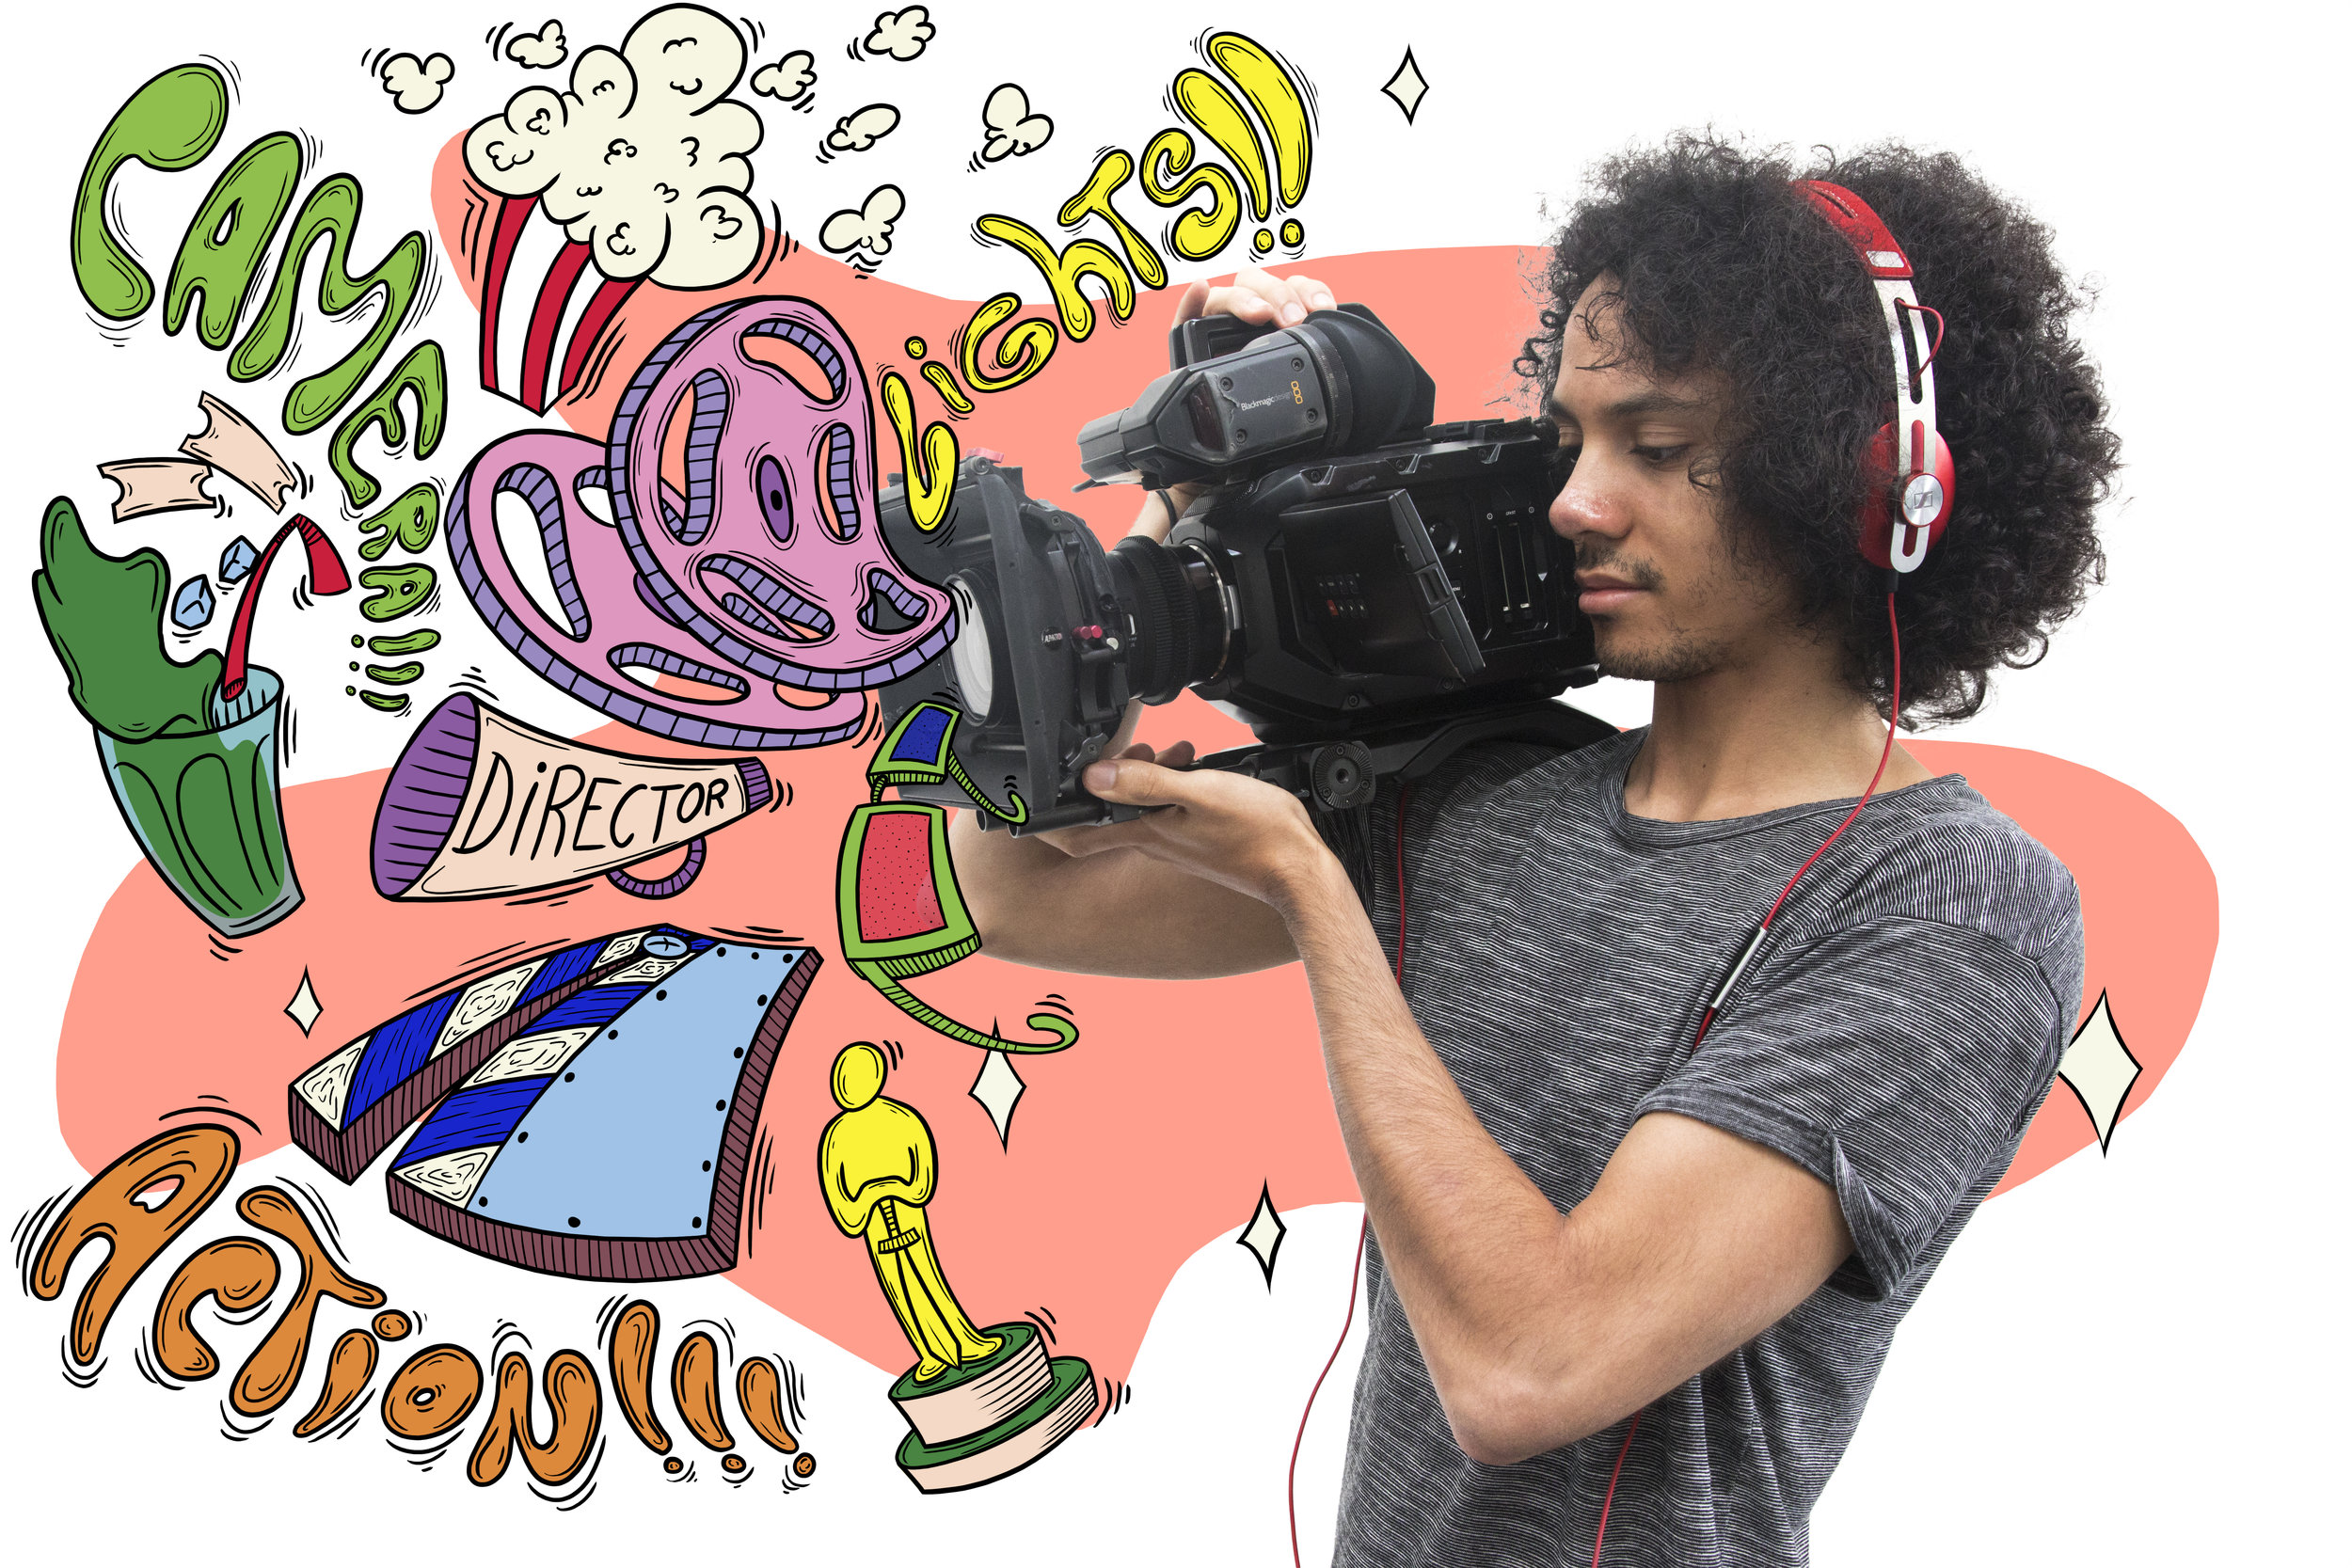 Conrad and his camera showcase our talented film making students